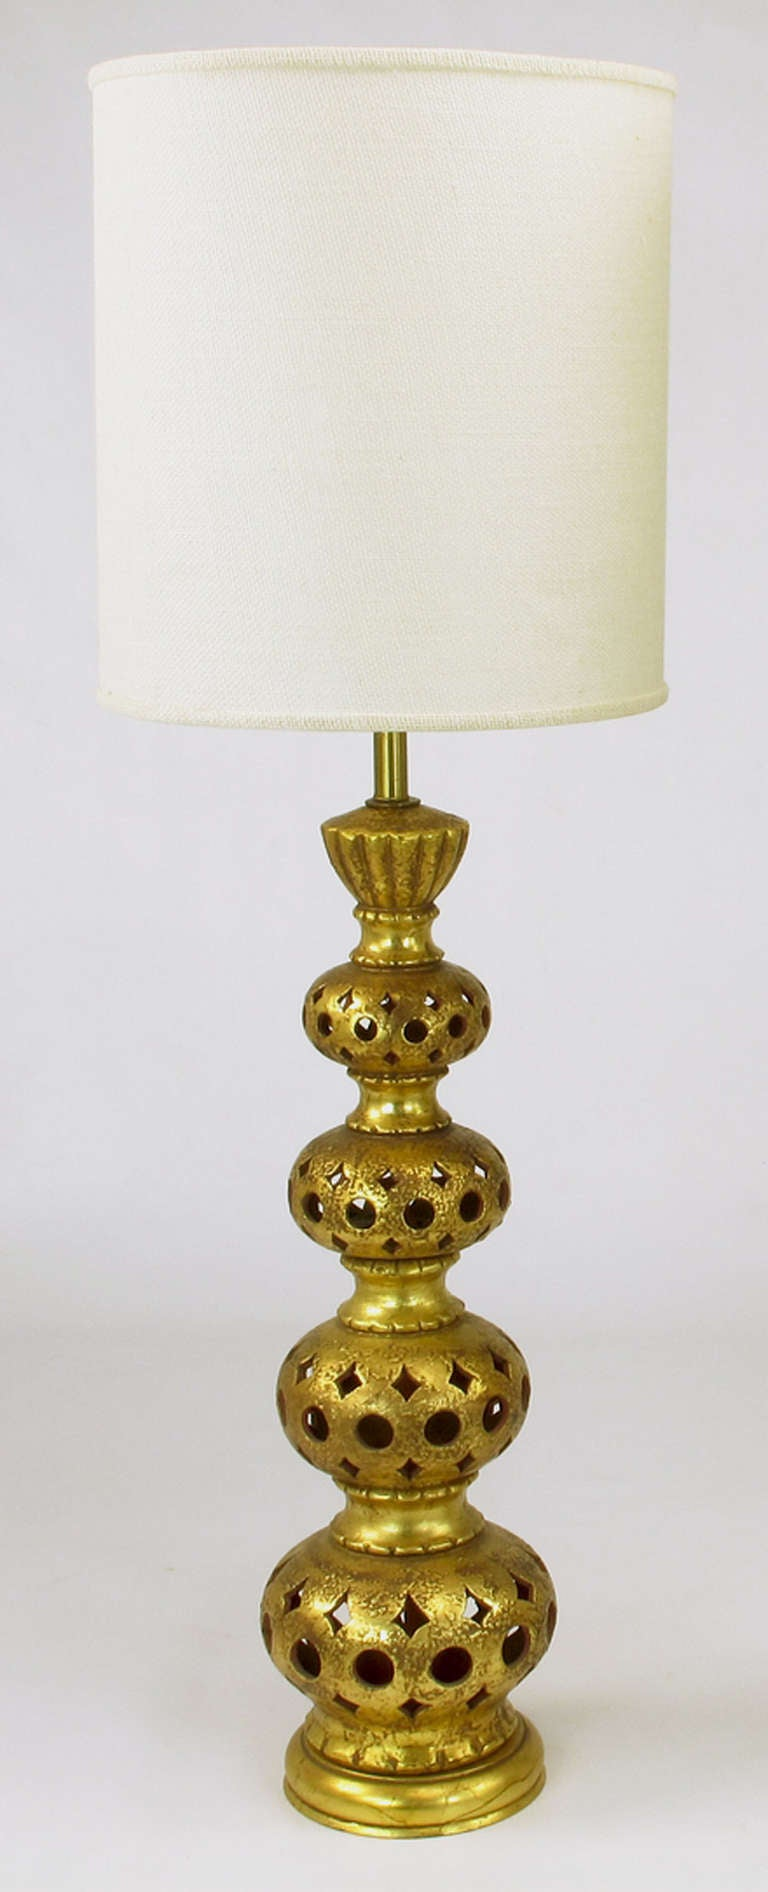 Pair of Nardi Studios Tall Pierced and Gilt Quadruple Gourd Ceramic Table Lamps In Excellent Condition For Sale In Chicago, IL